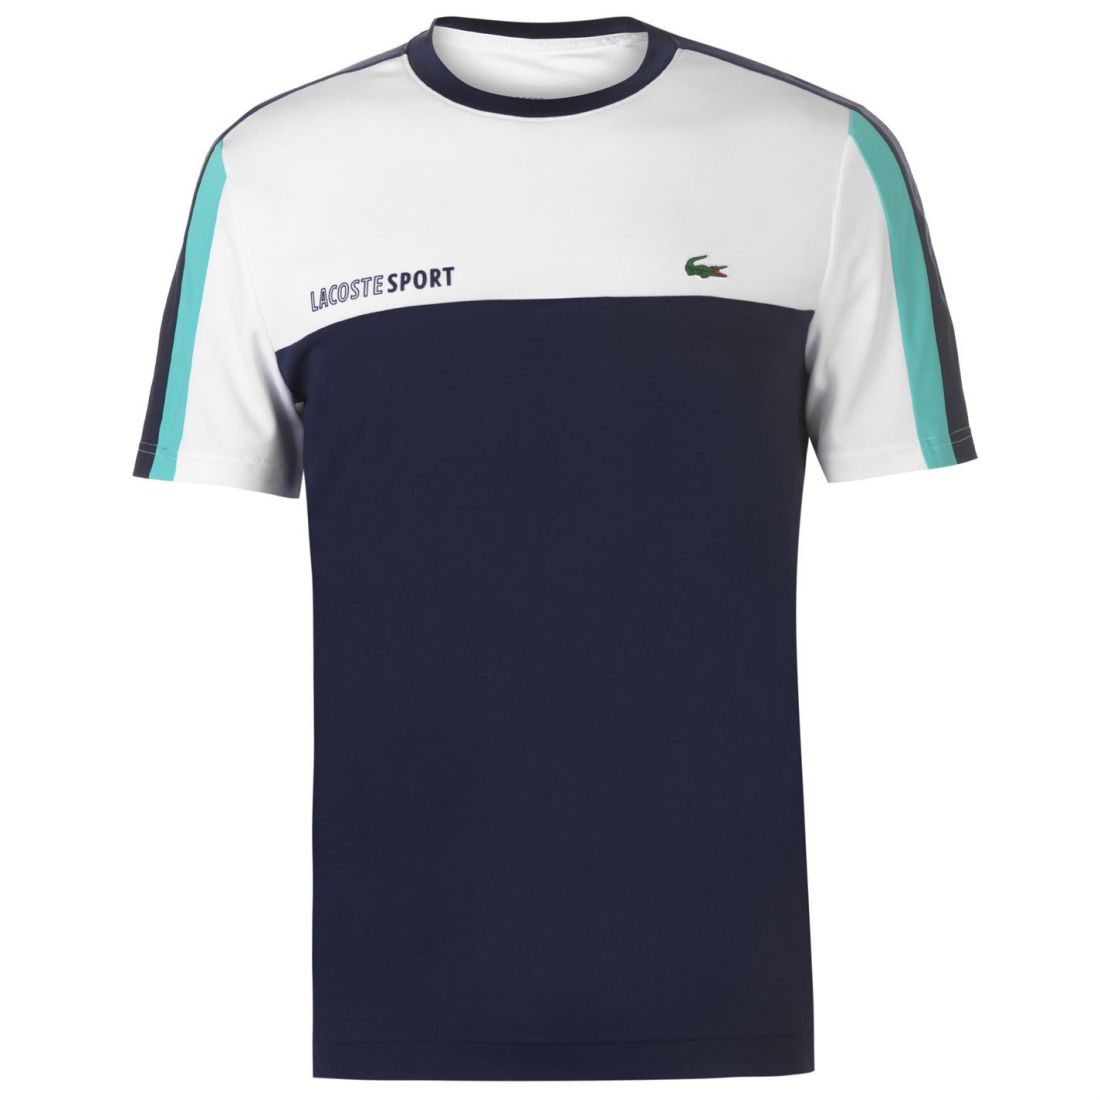 d4af4aff3146 Mens Lacoste Tennis Tri Colour T Shirt Crew Neck Short Sleeve New